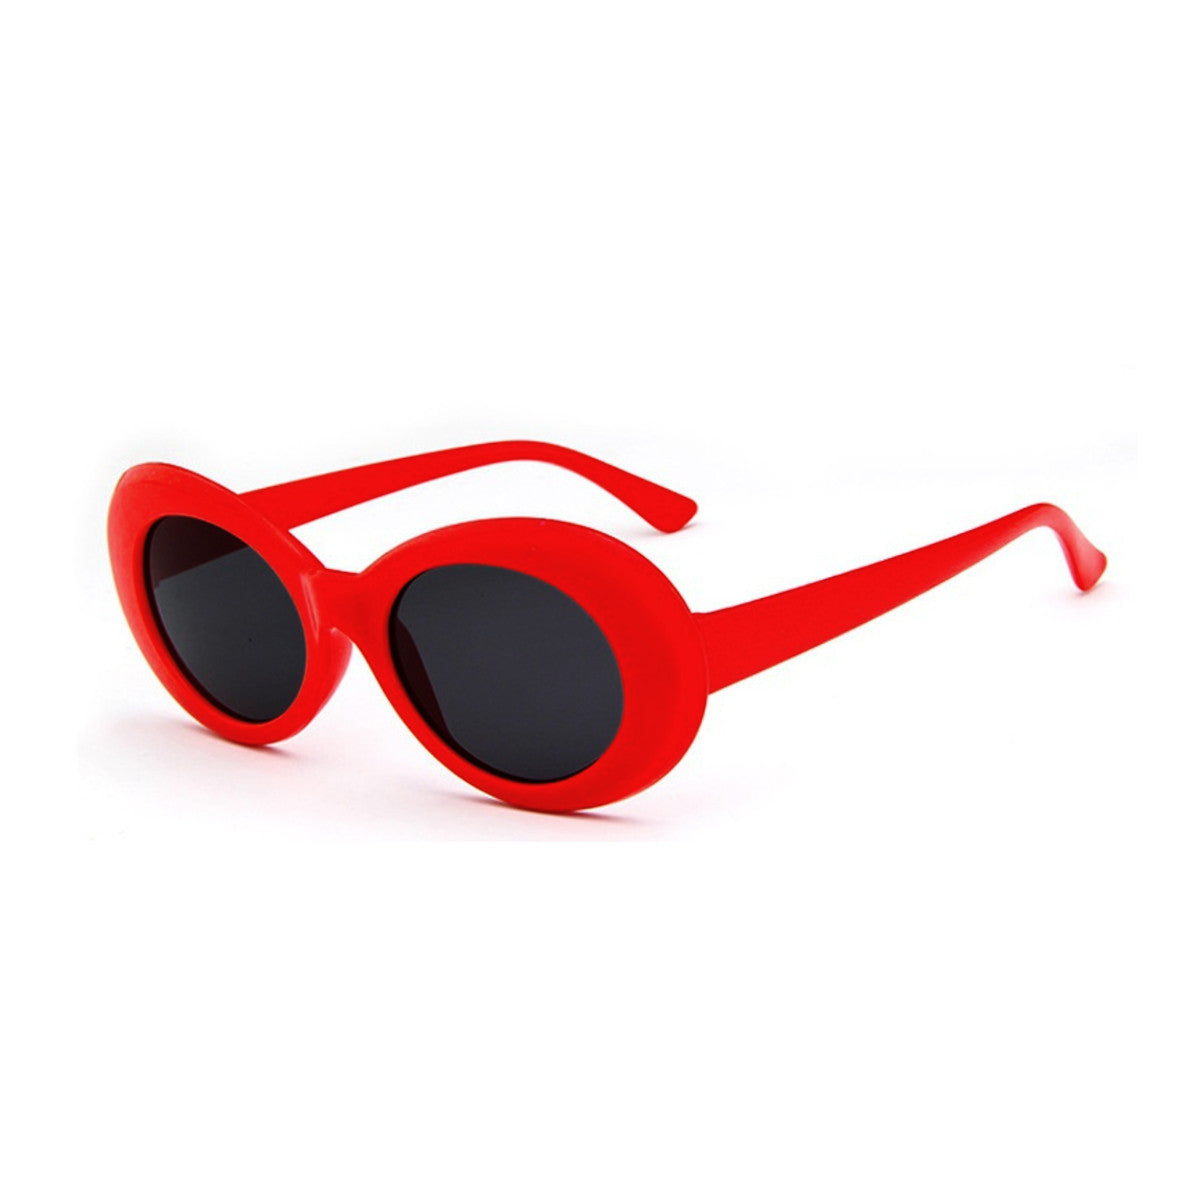 dc1a2ed237 Nevermind Sunglasses in Red – Petals and Peacocks